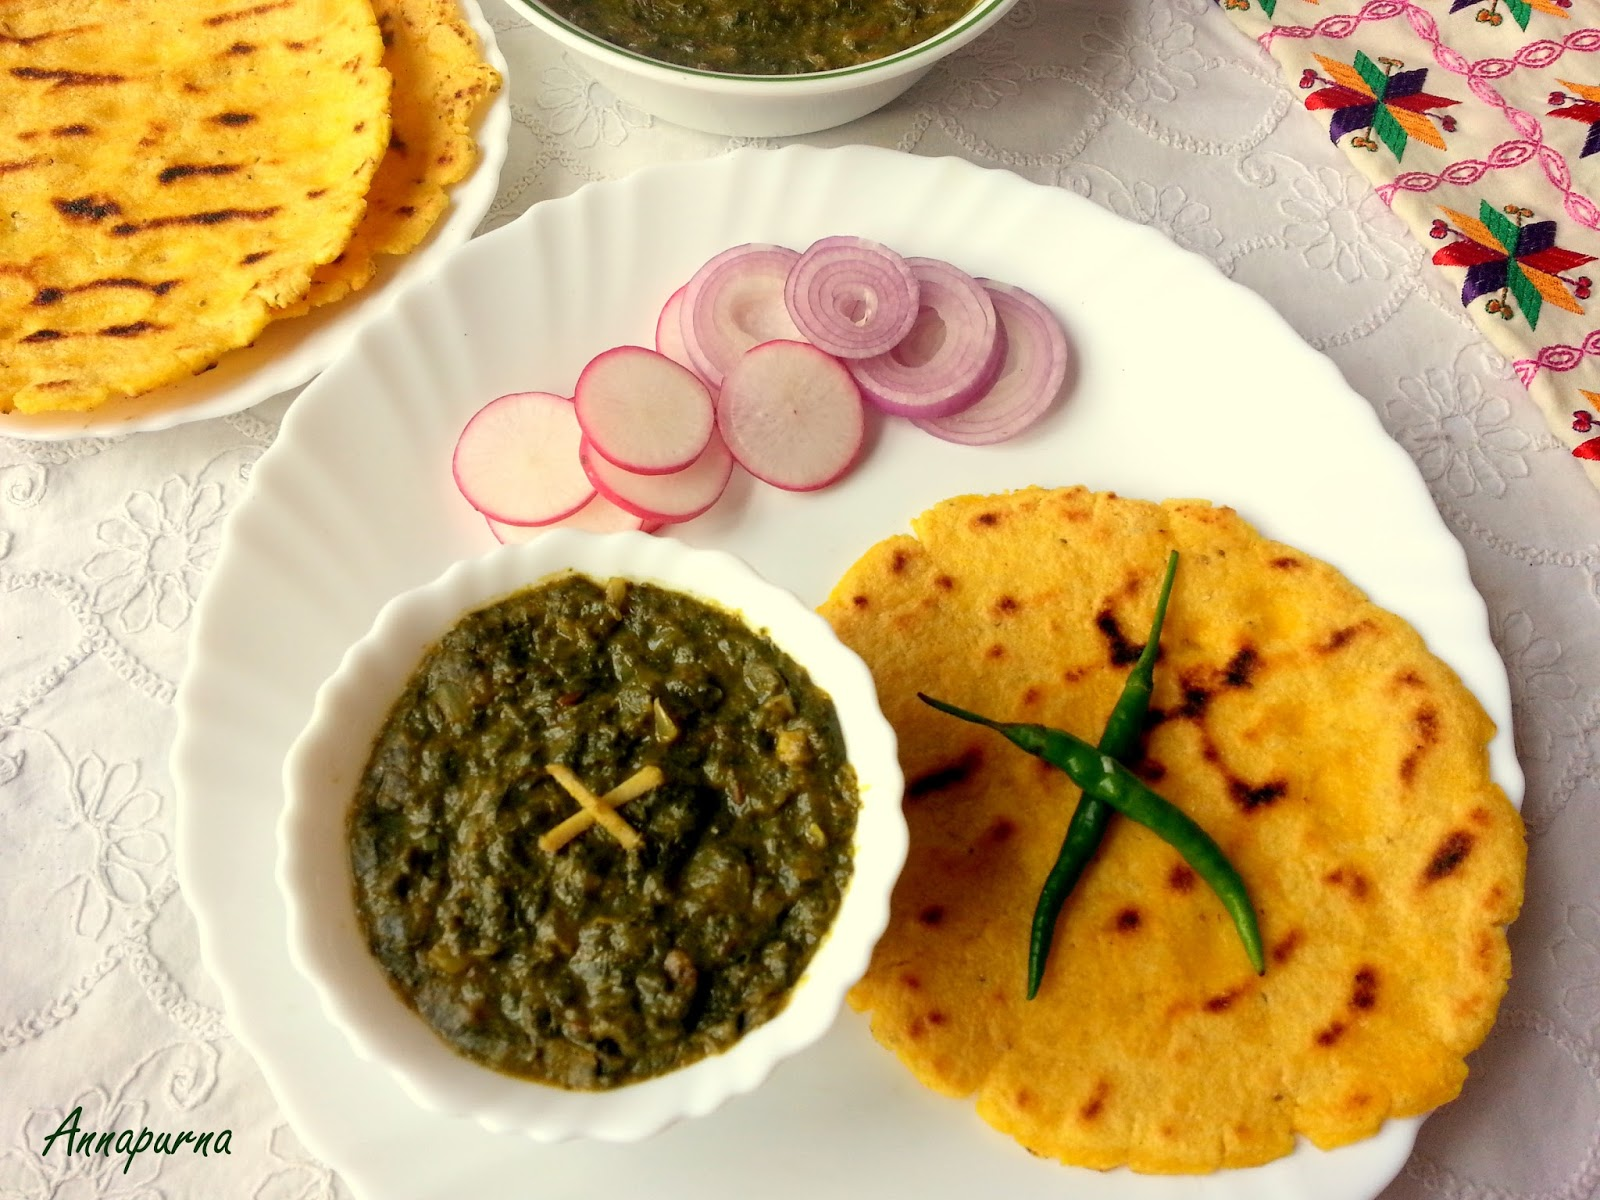 Indian food recipes indian recipes desi food desi recipes makki in hindi means maize and roti is flat bread making makki ki roti at home needs some practice and patience as the maize flour is gluten free forumfinder Gallery